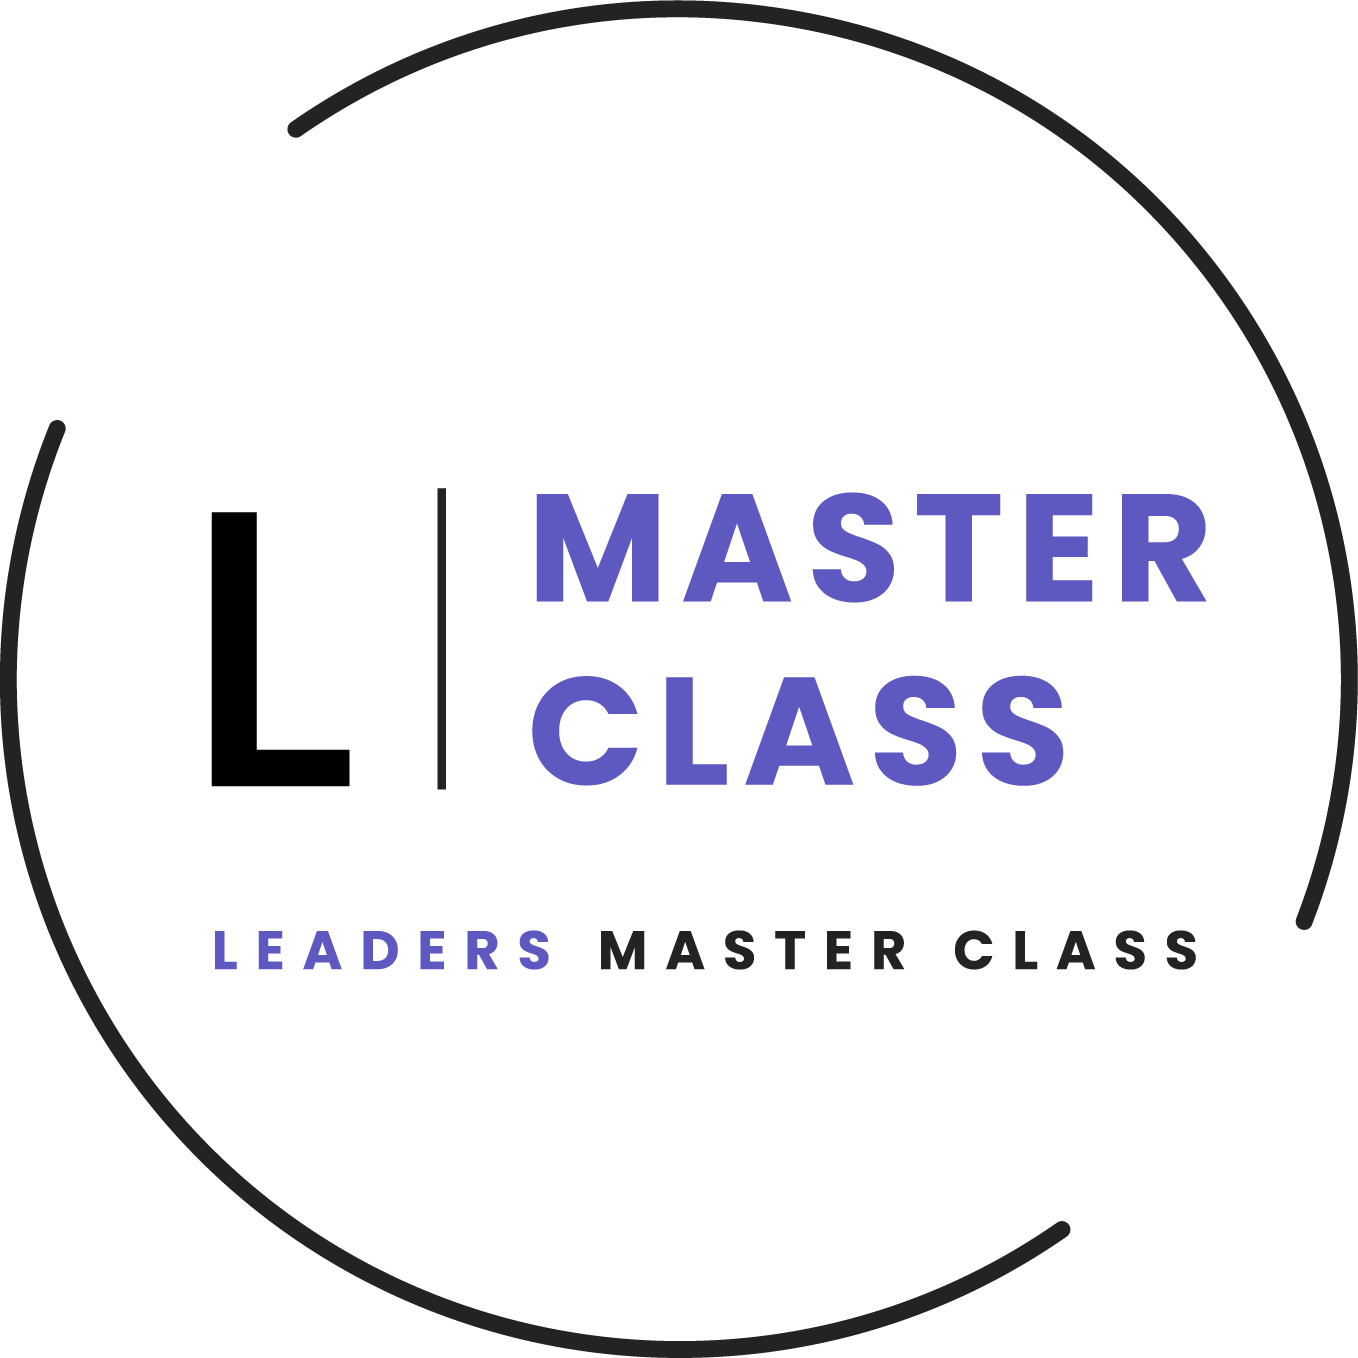 Leaders Master Class